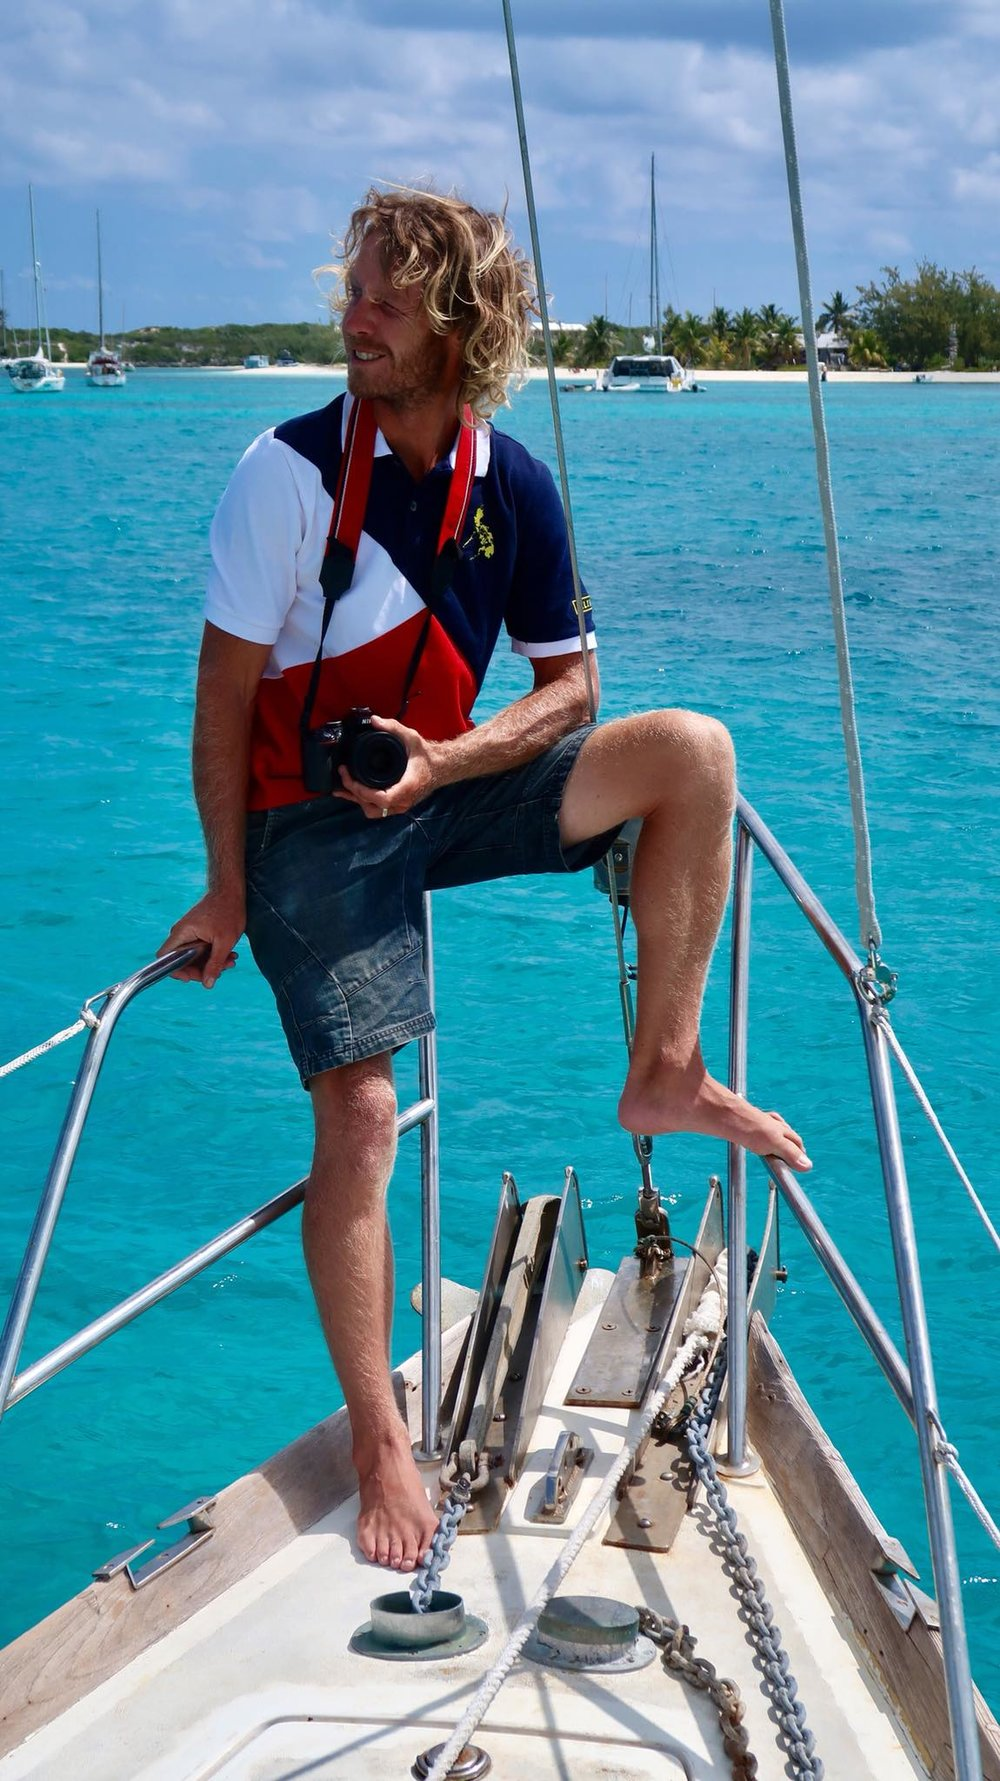 Sailing Life Day 30: Bahamas Photoshoot for a Magazine Feature